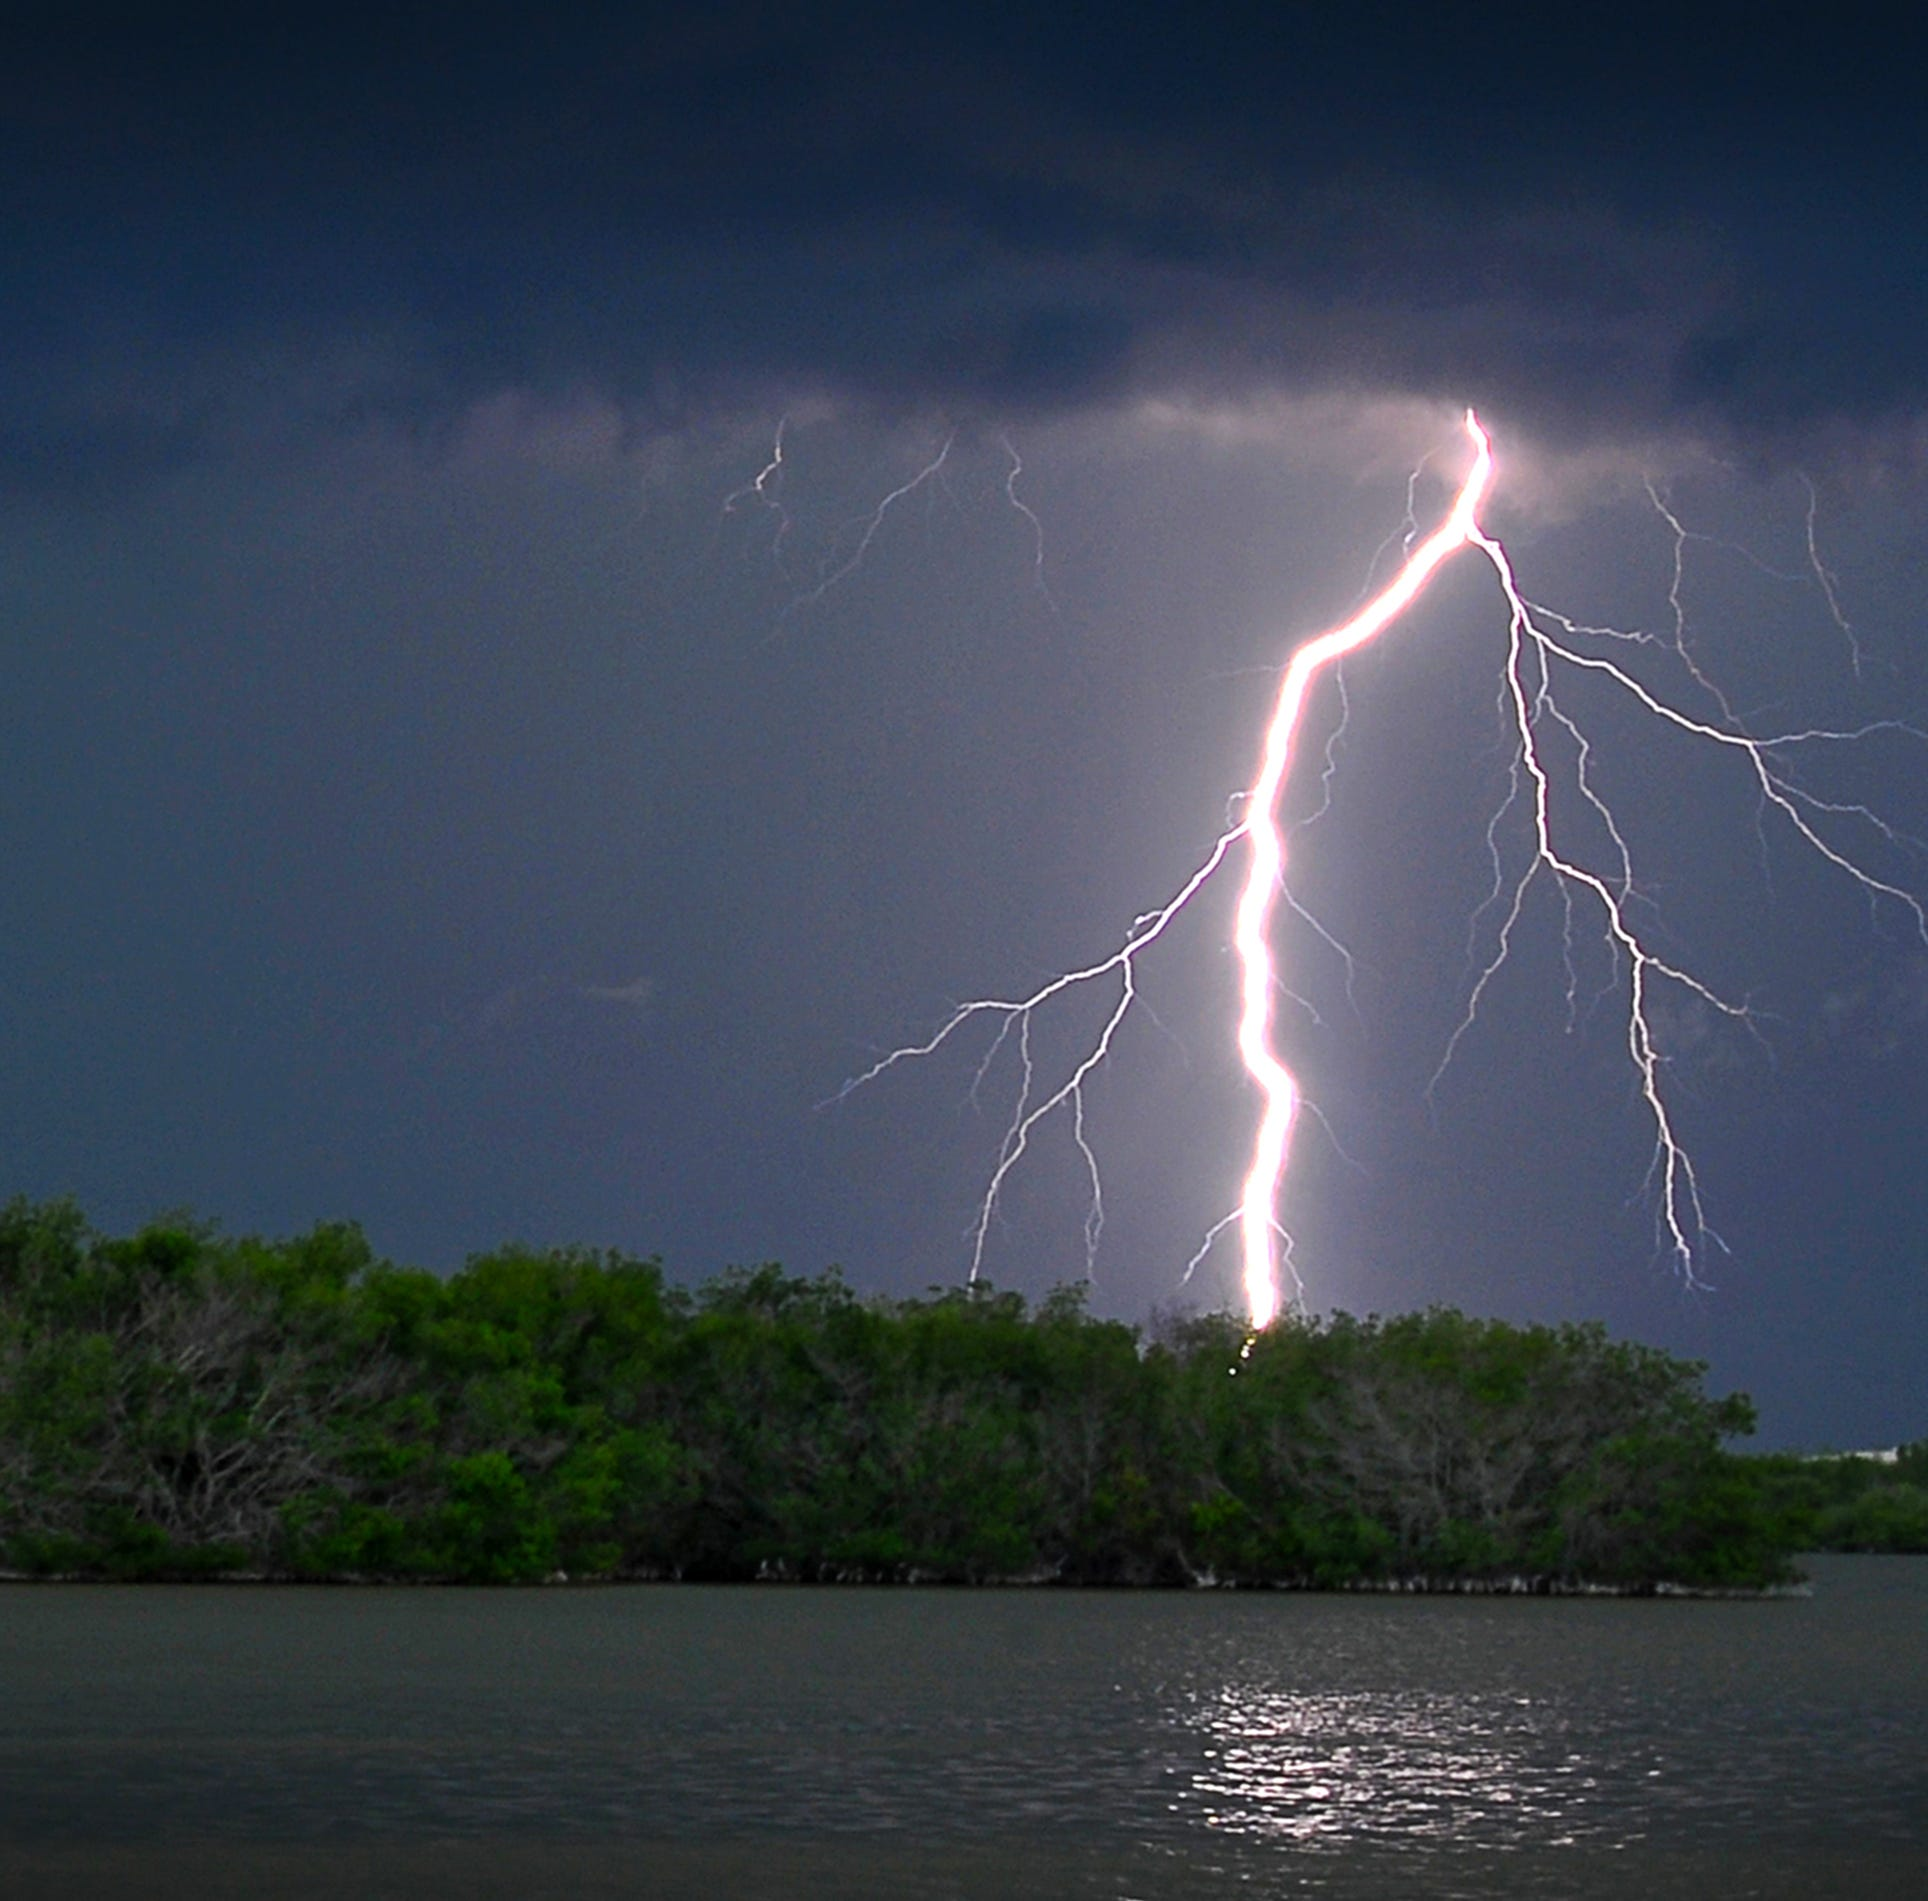 Rain, heavy lightning expected for Space Coast as week continues